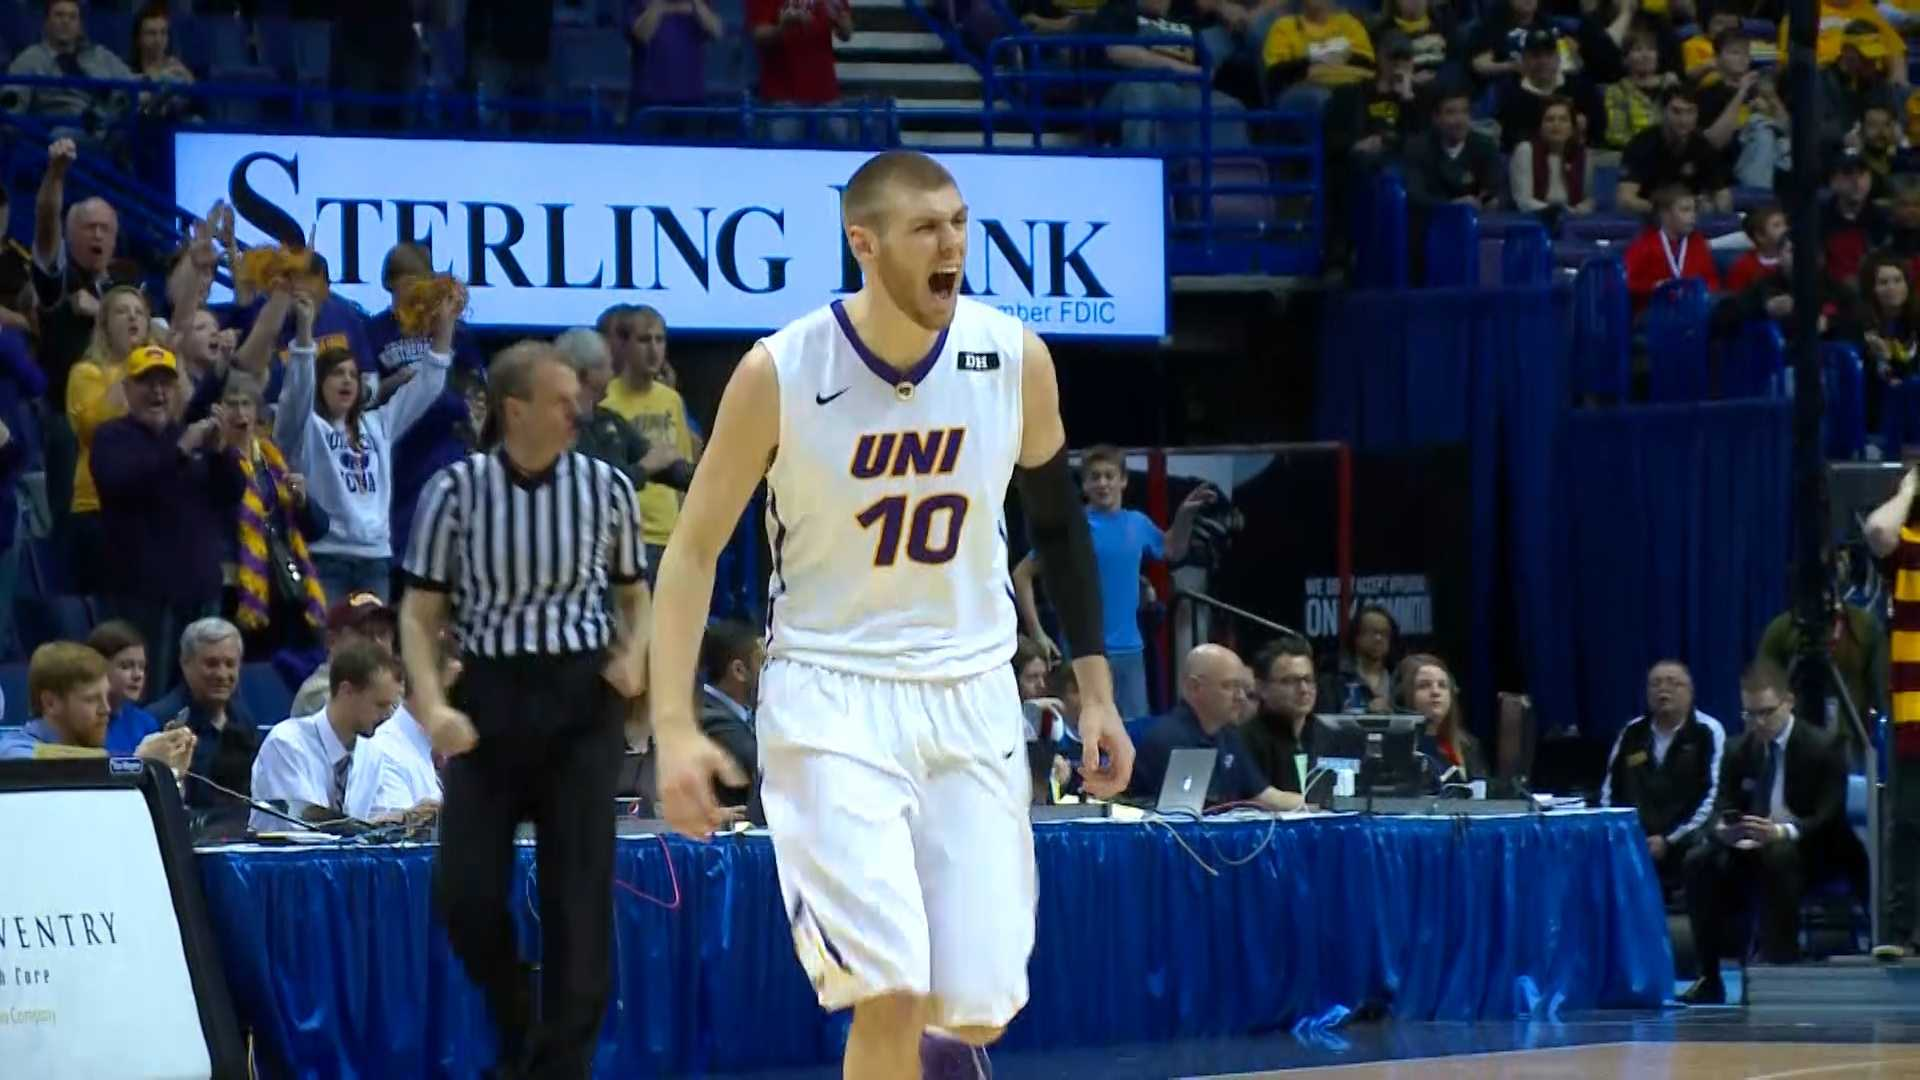 Missouri Valley Conference MVP Seth Tuttle celebrates after hitting a 3-pointer against Loyola in the Arch Madness semifinals Saturday.